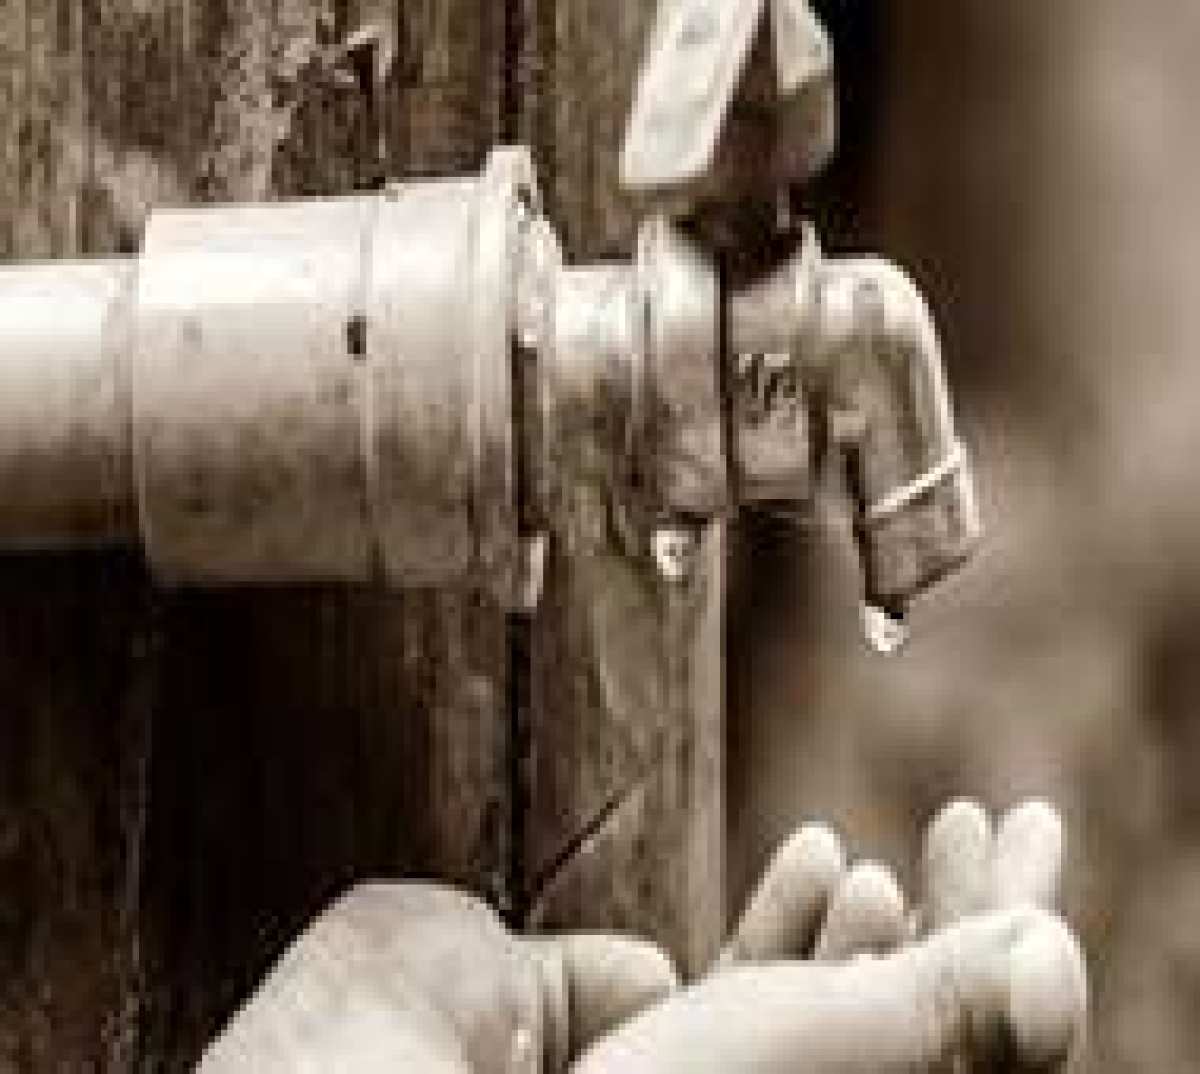 Indore: Supply hit in colonies connected to 24 tanks